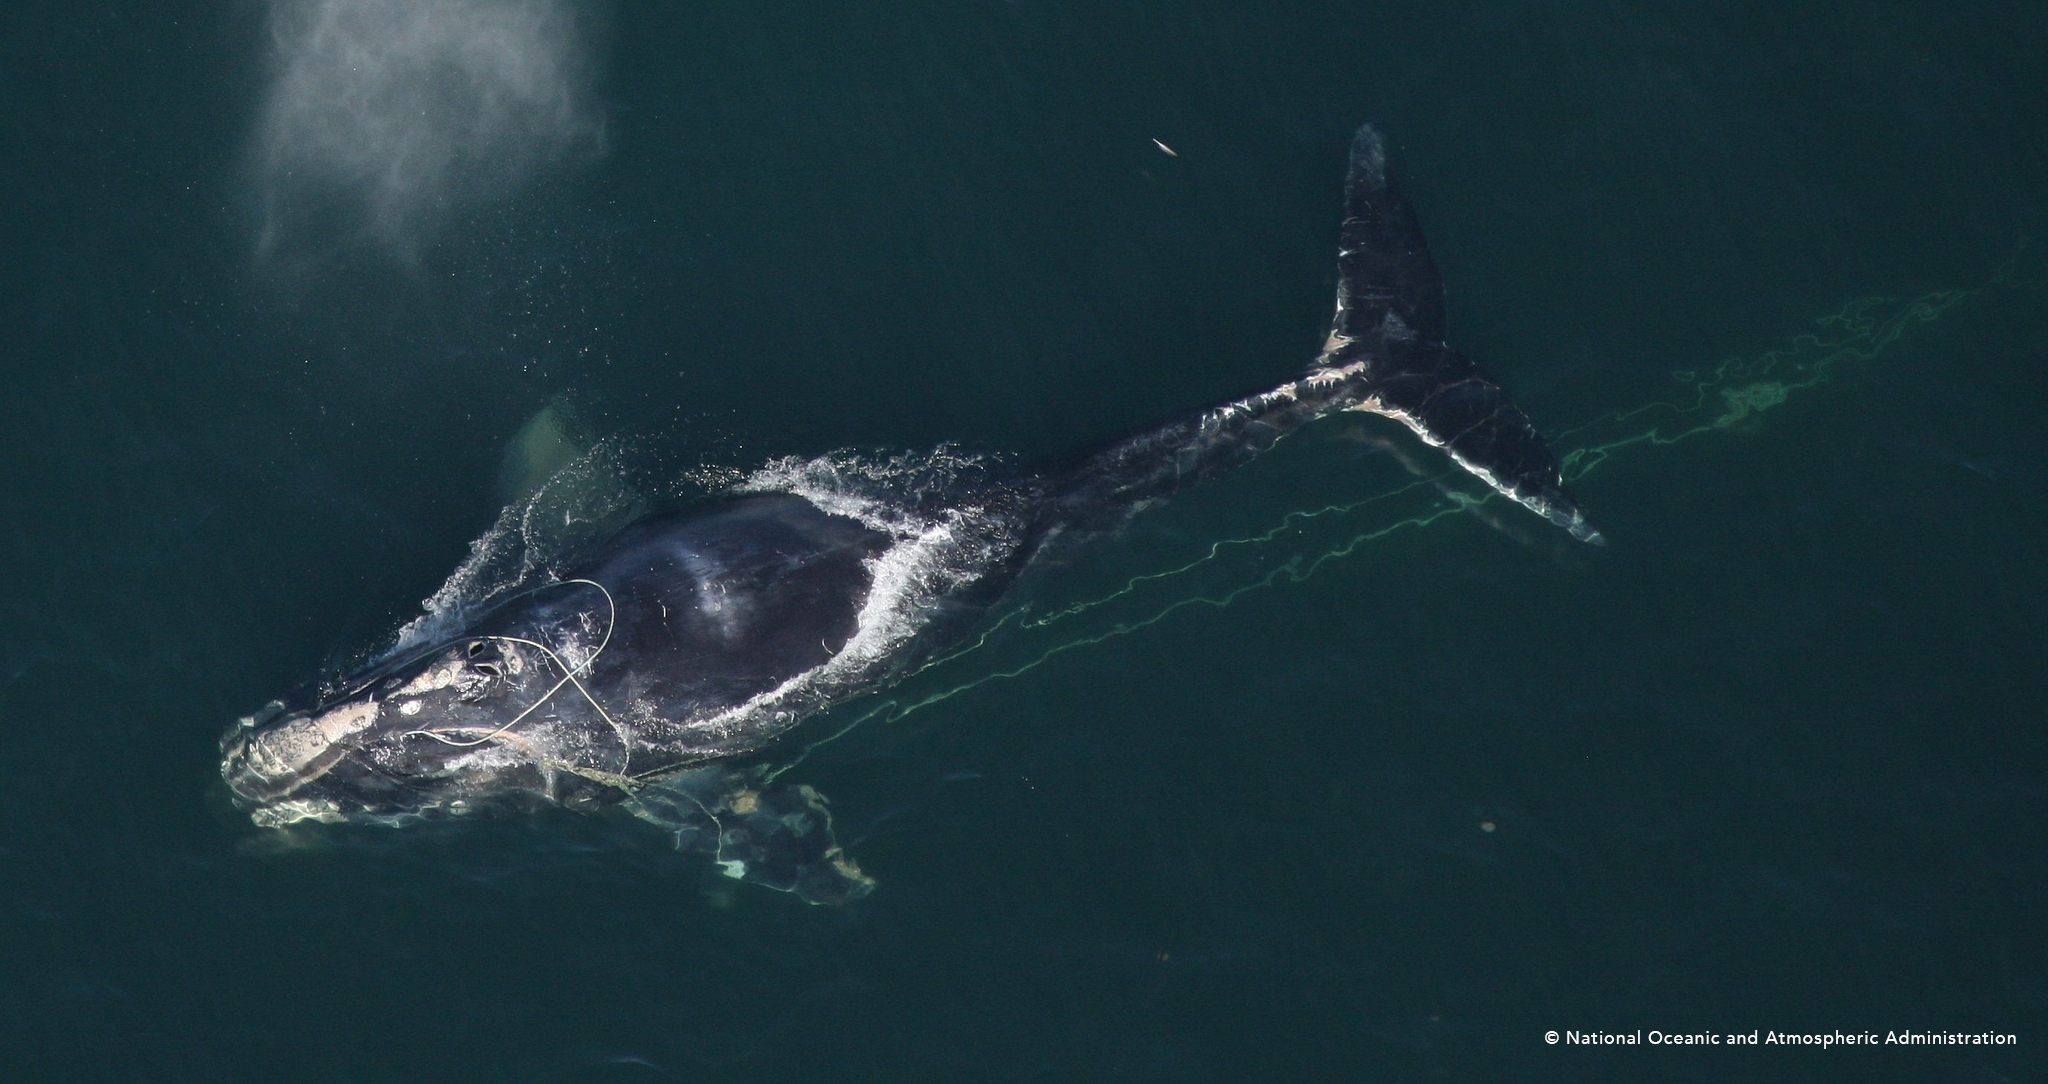 Entangled North Atlantic right whale © National Oceanic and Atmospheric Administration